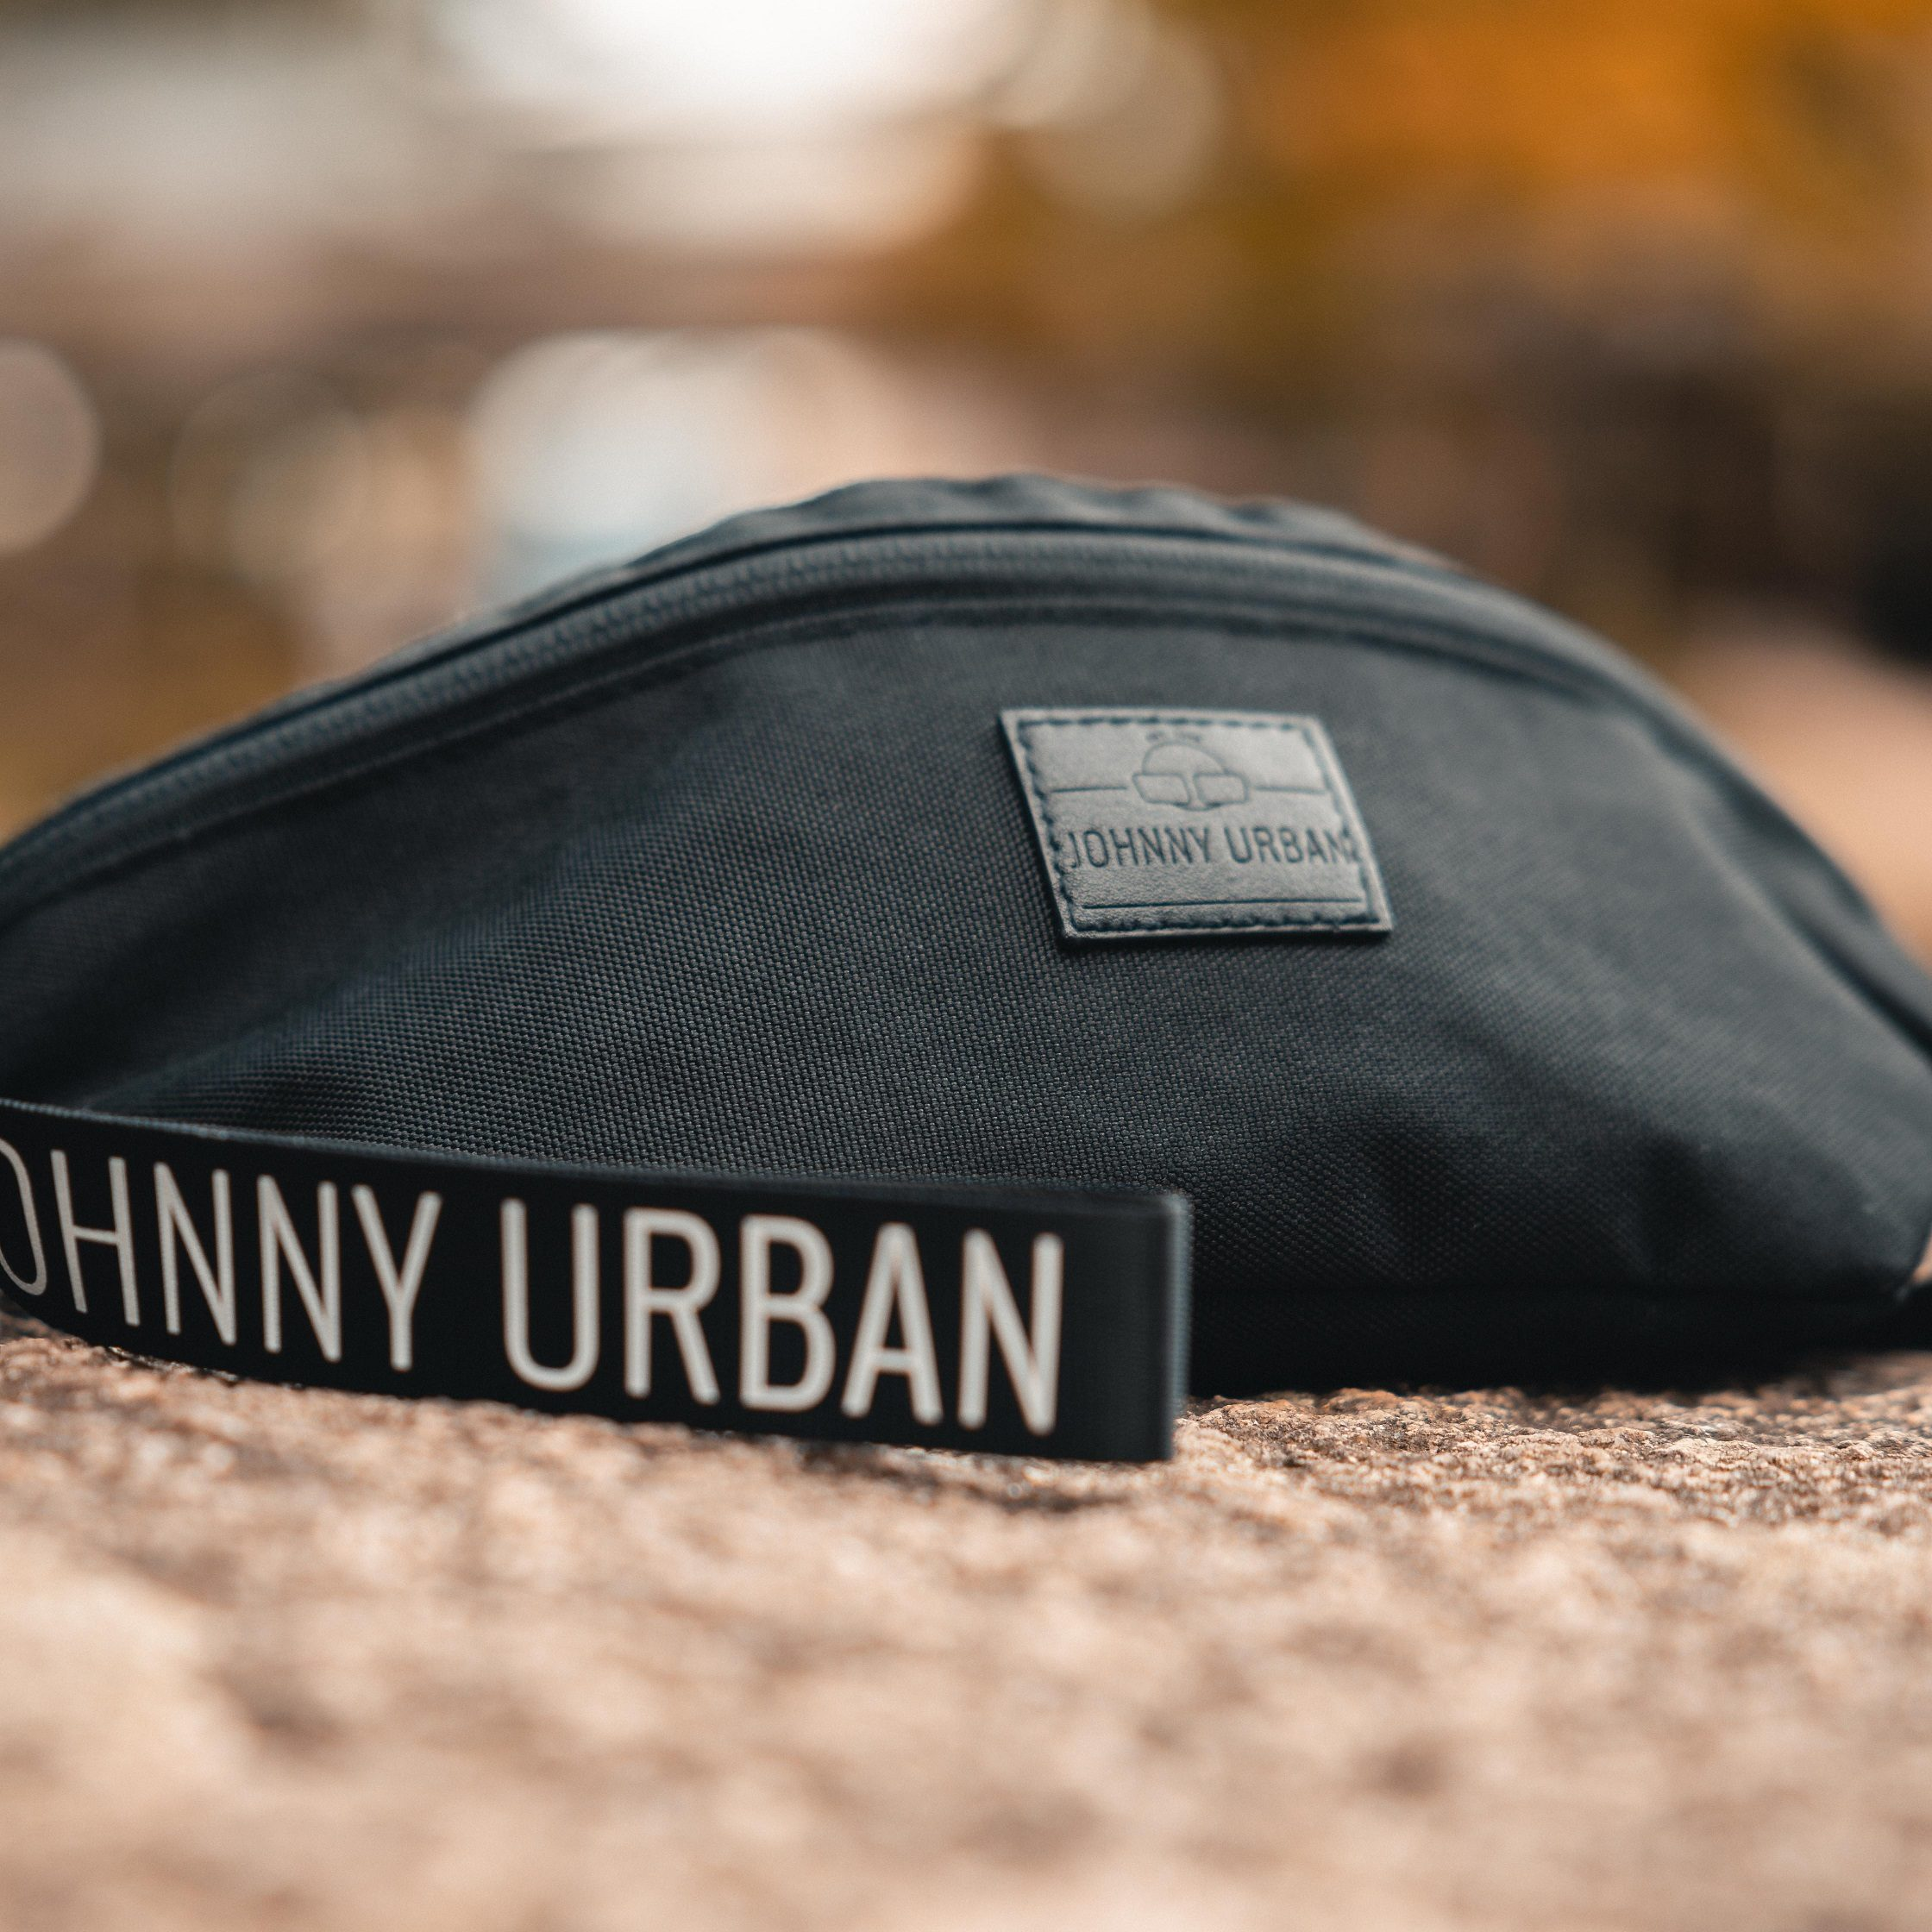 Johnny_Urban_Shooting_10@mgkini86-1957